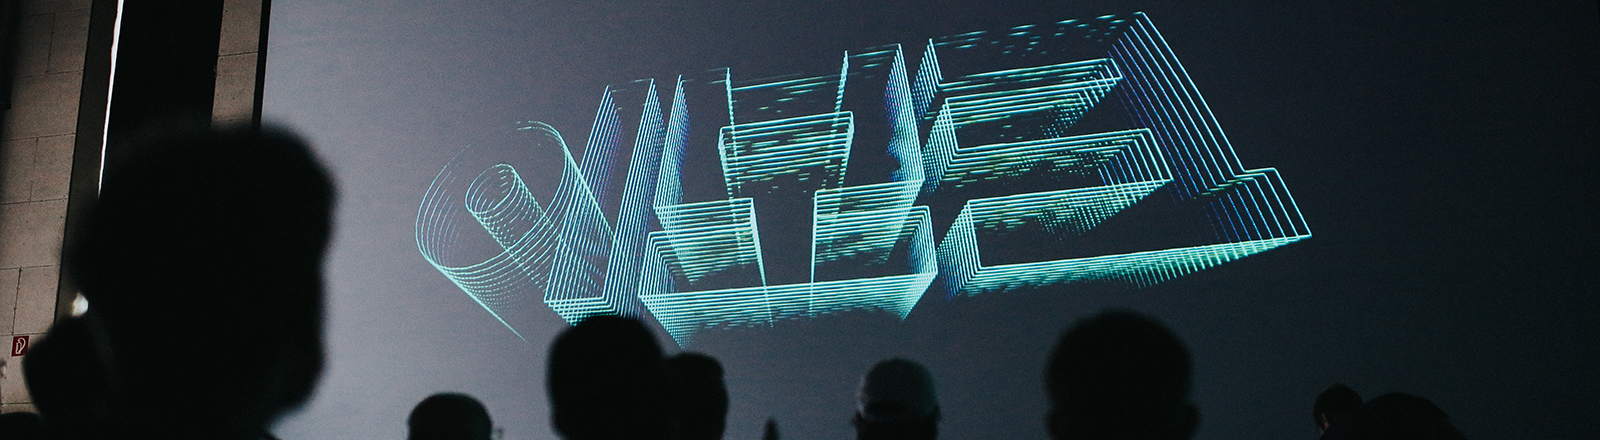 Demoscene Evoke 2019